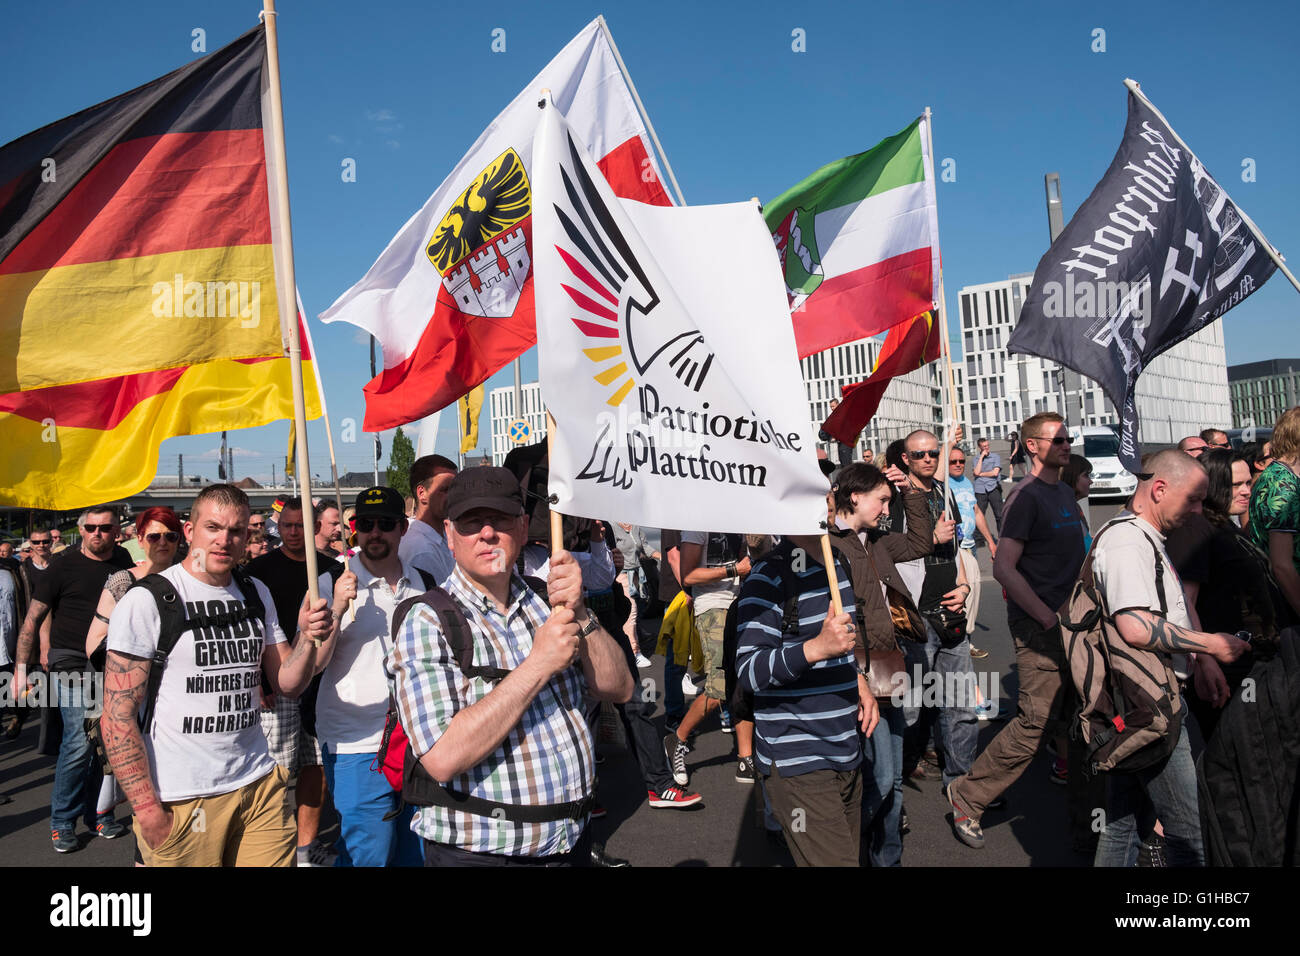 Far-right demonstrators protest against Islam, refugees and Angela Merkel in Berlin - Stock Image